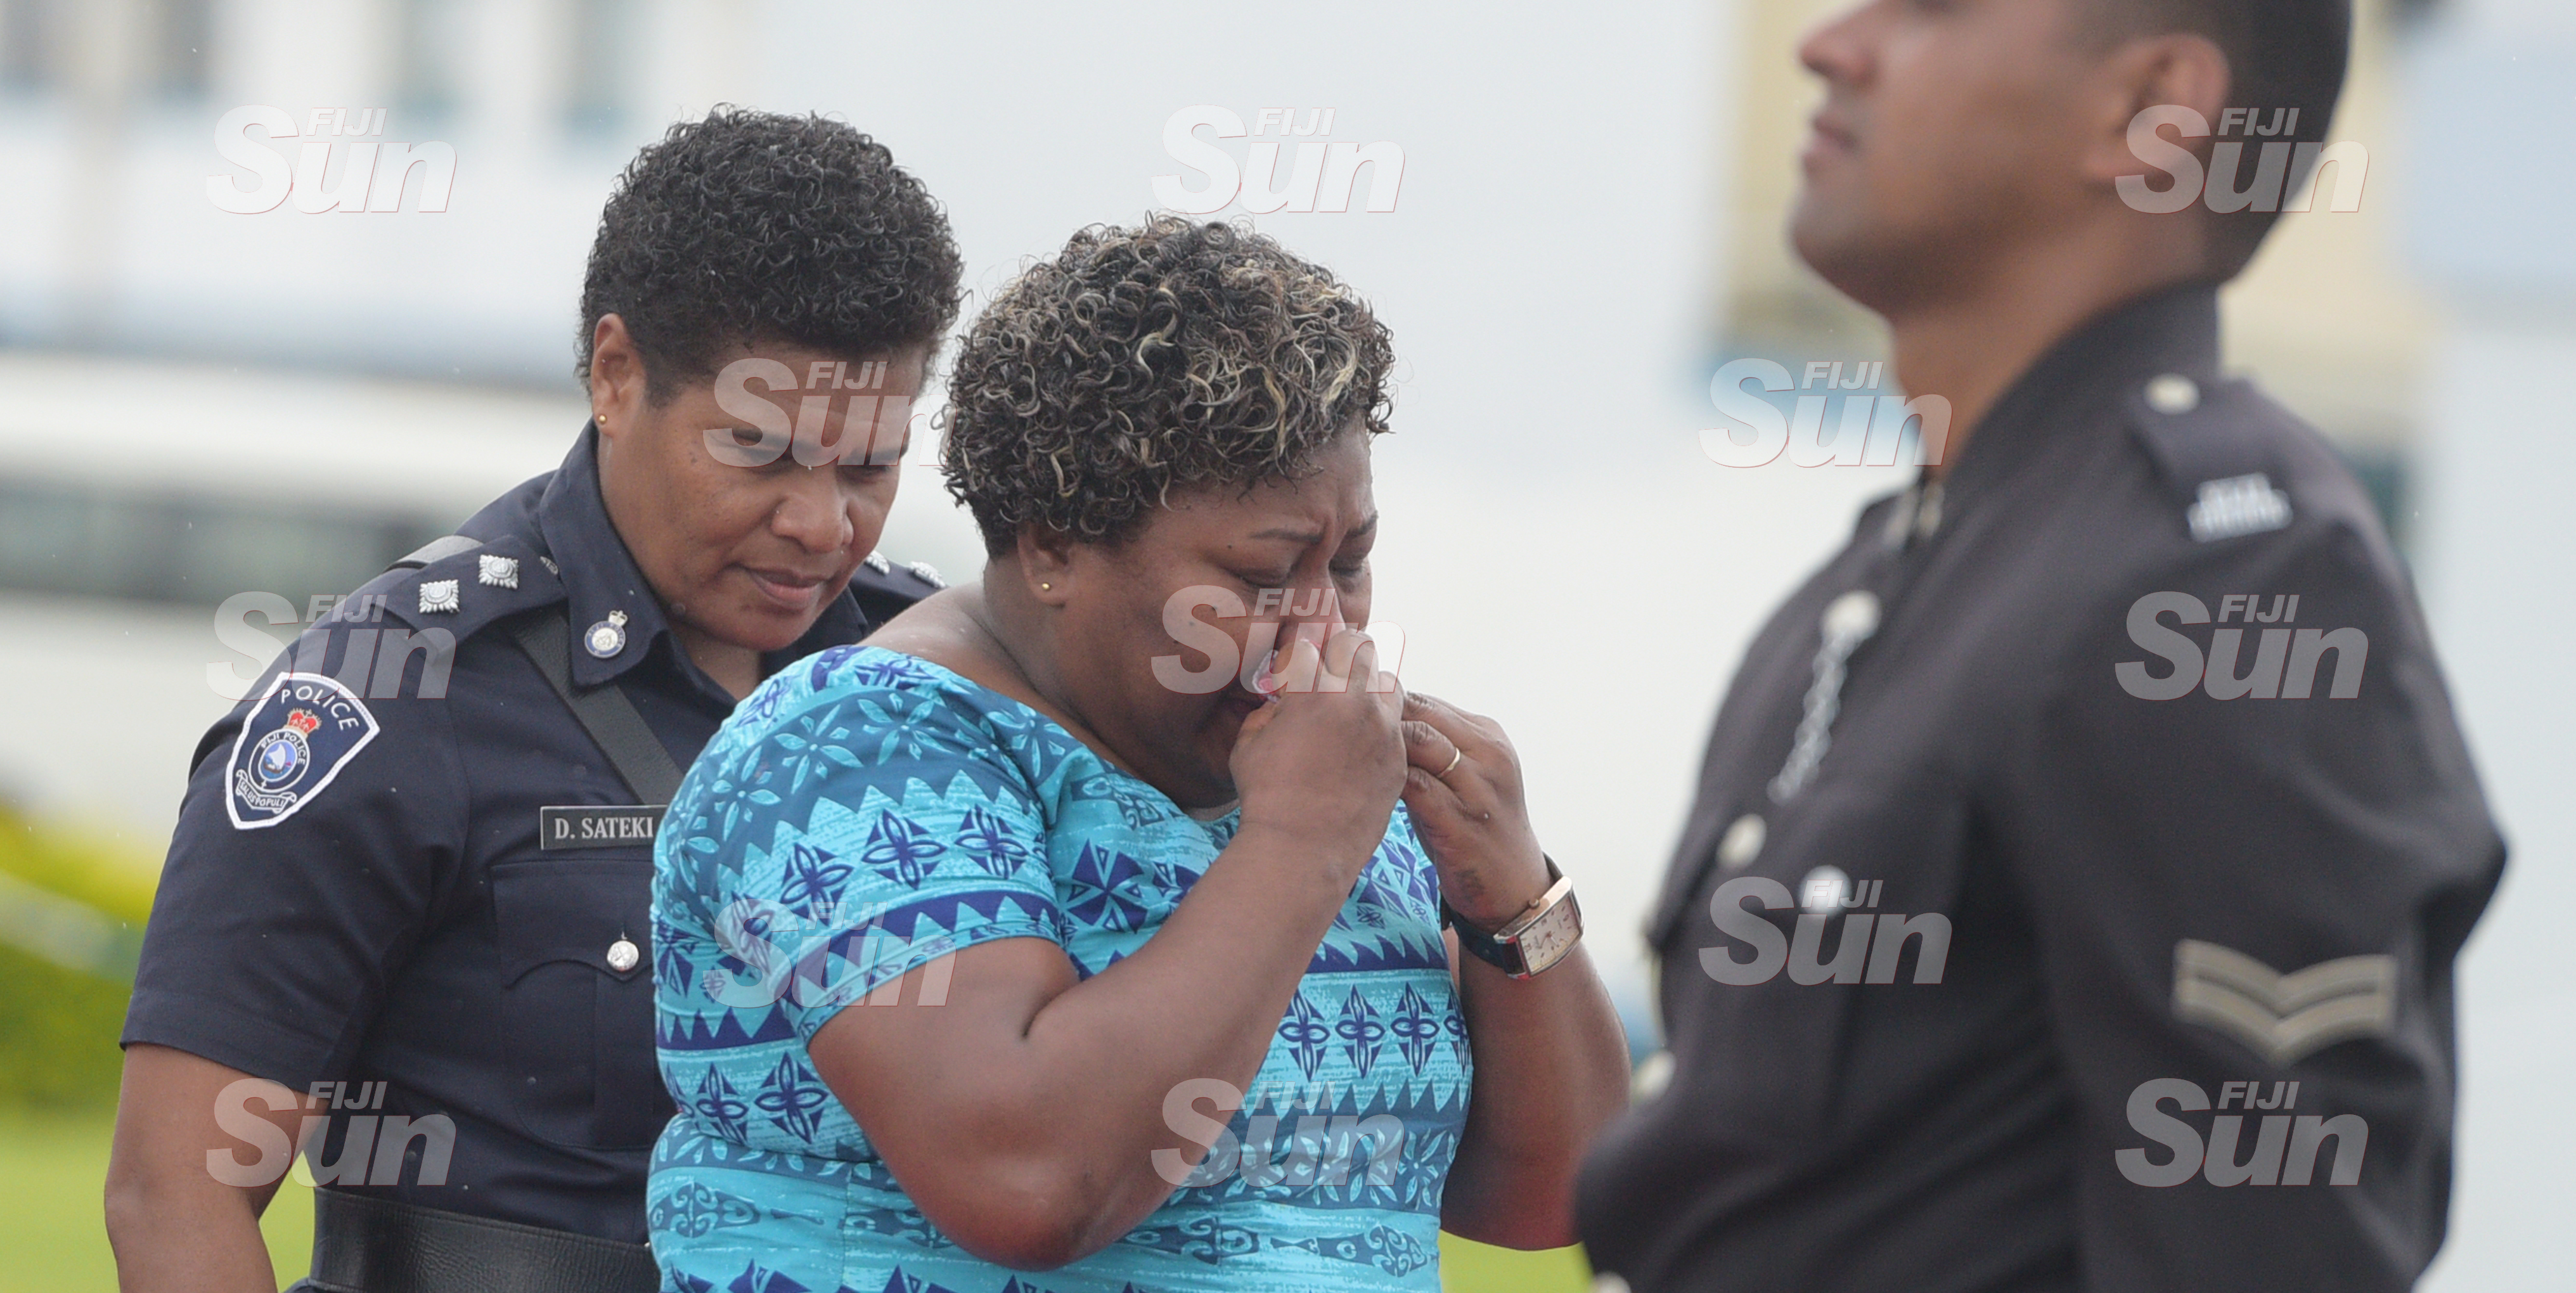 An emotional Kolaia Diaga (middle) could hold back her tears as she remembers her aunt, Women Constable, Maraia Tinairakita during Police Remembrance Day at Police Special Response Unit on September 29, 2020. Photo: Ronald Kumar.